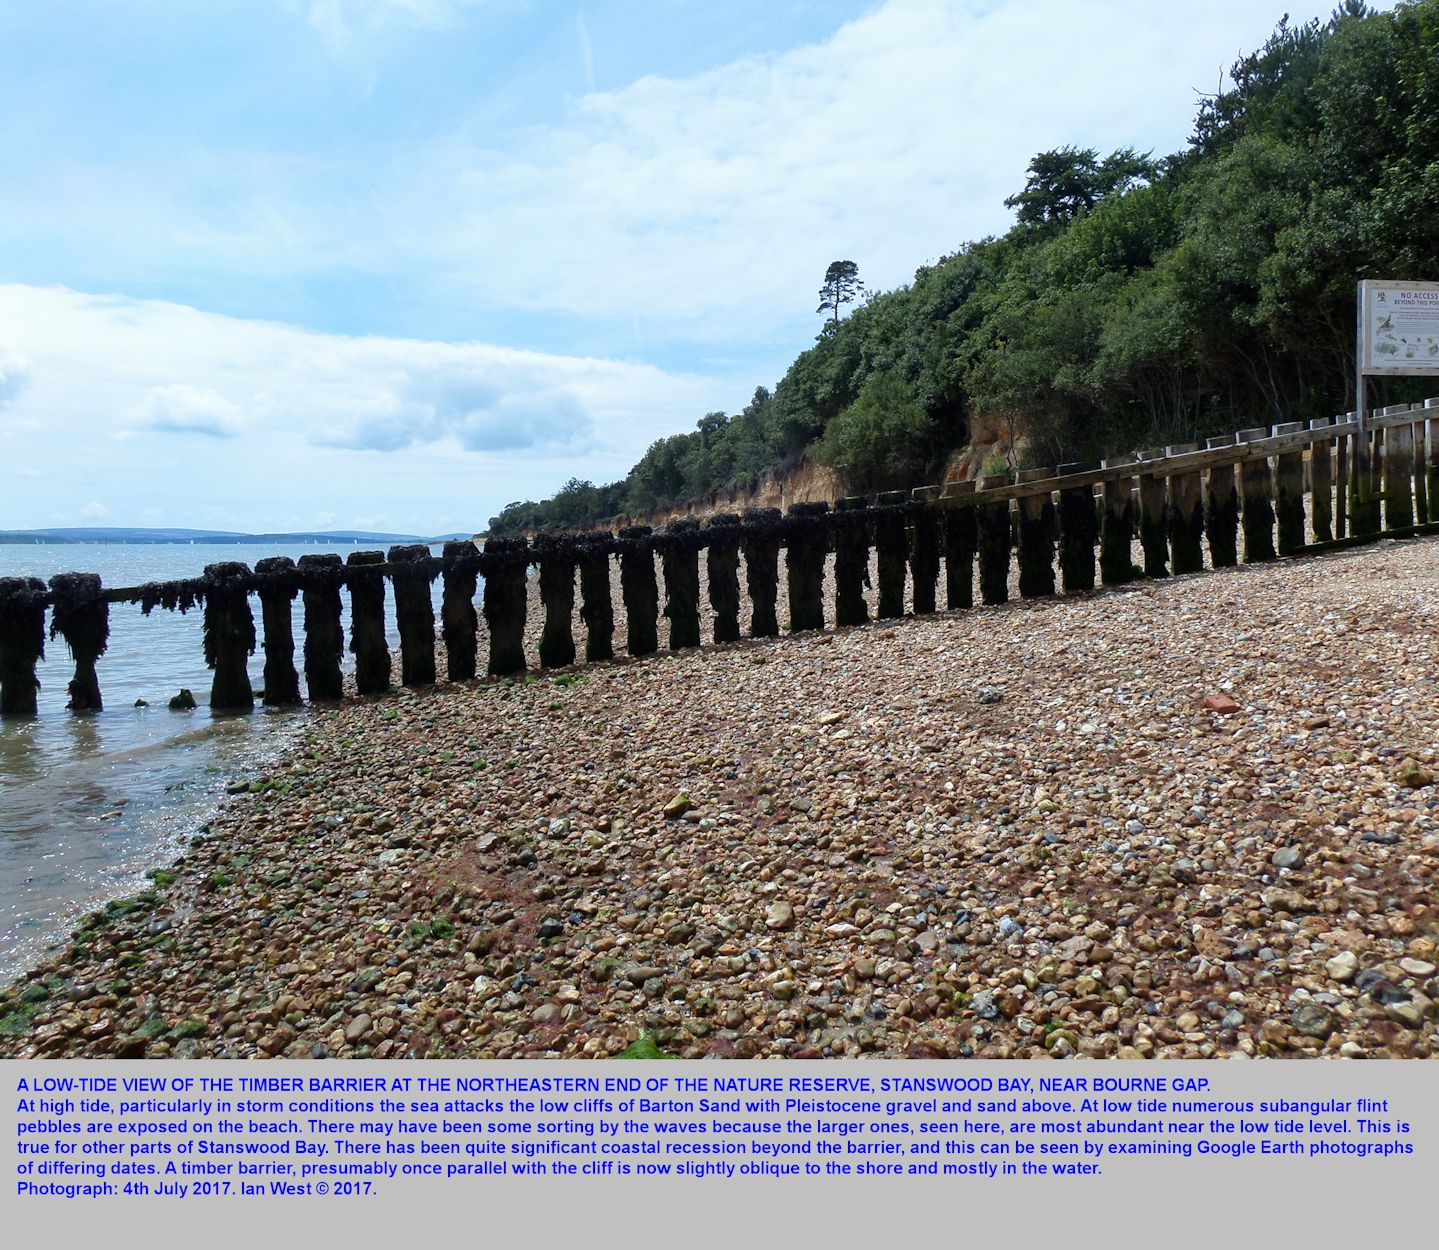 The timber barrier at the northeastern end of the Nature Reserve, Stanswood Bay, near Calshot Spit, Hampshire